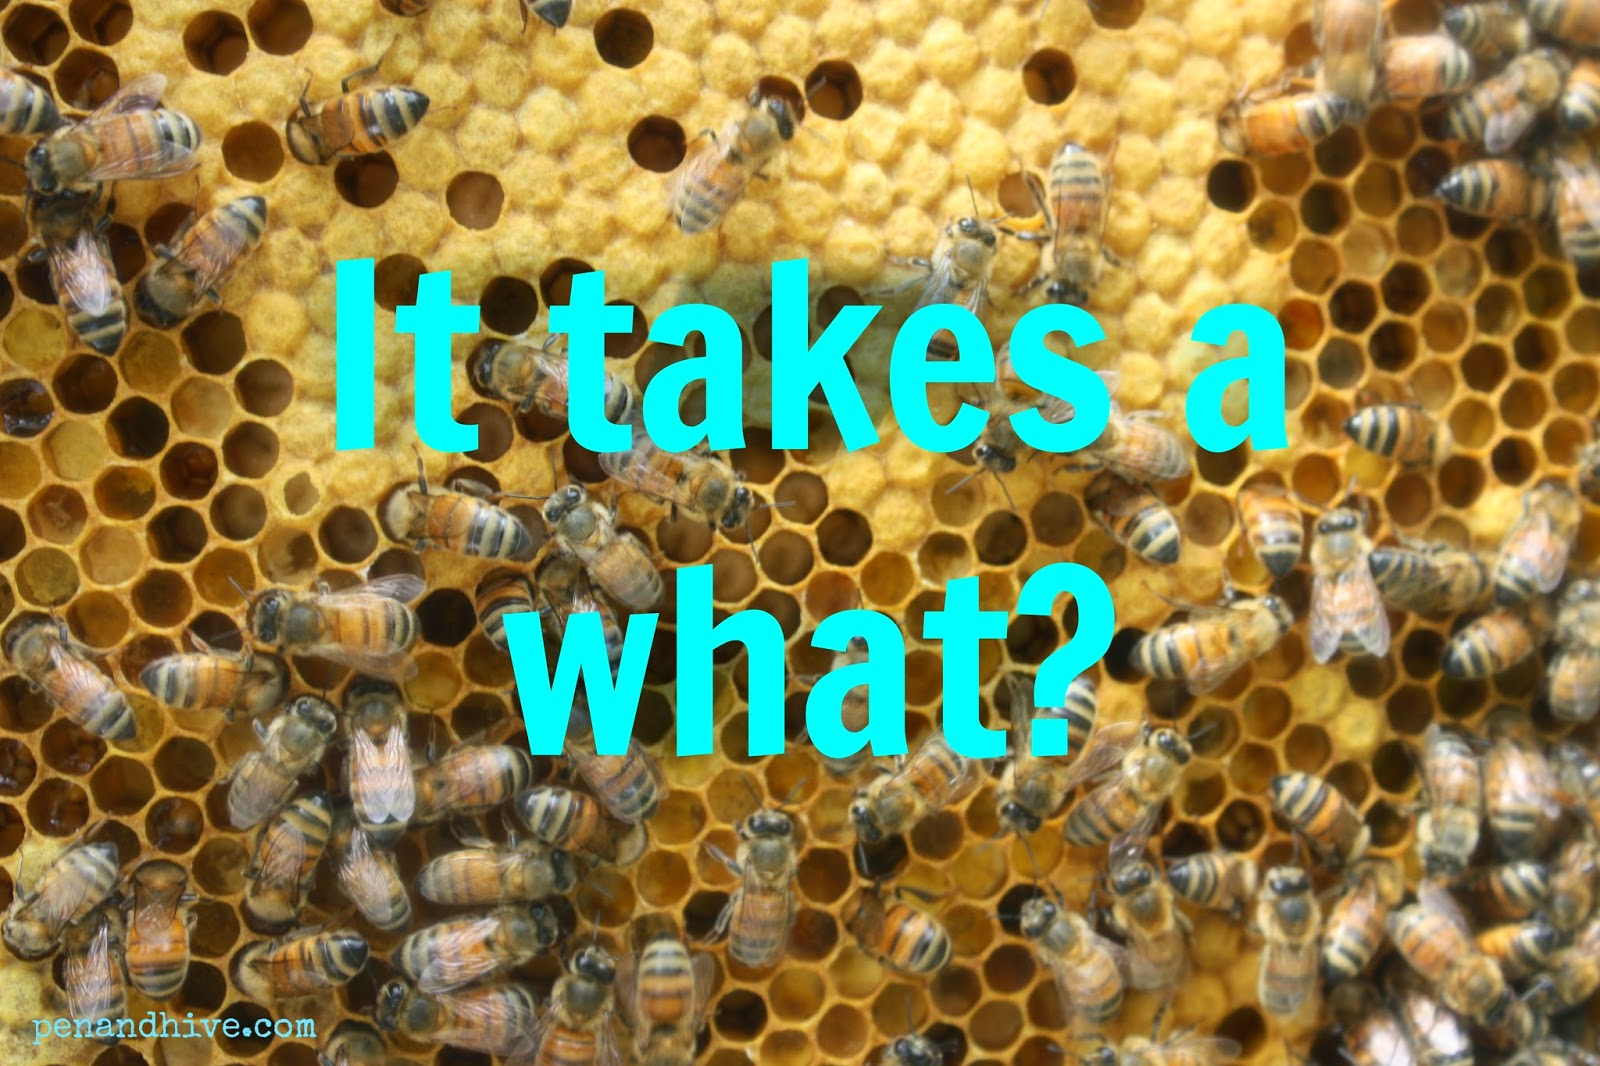 beekeeping and community